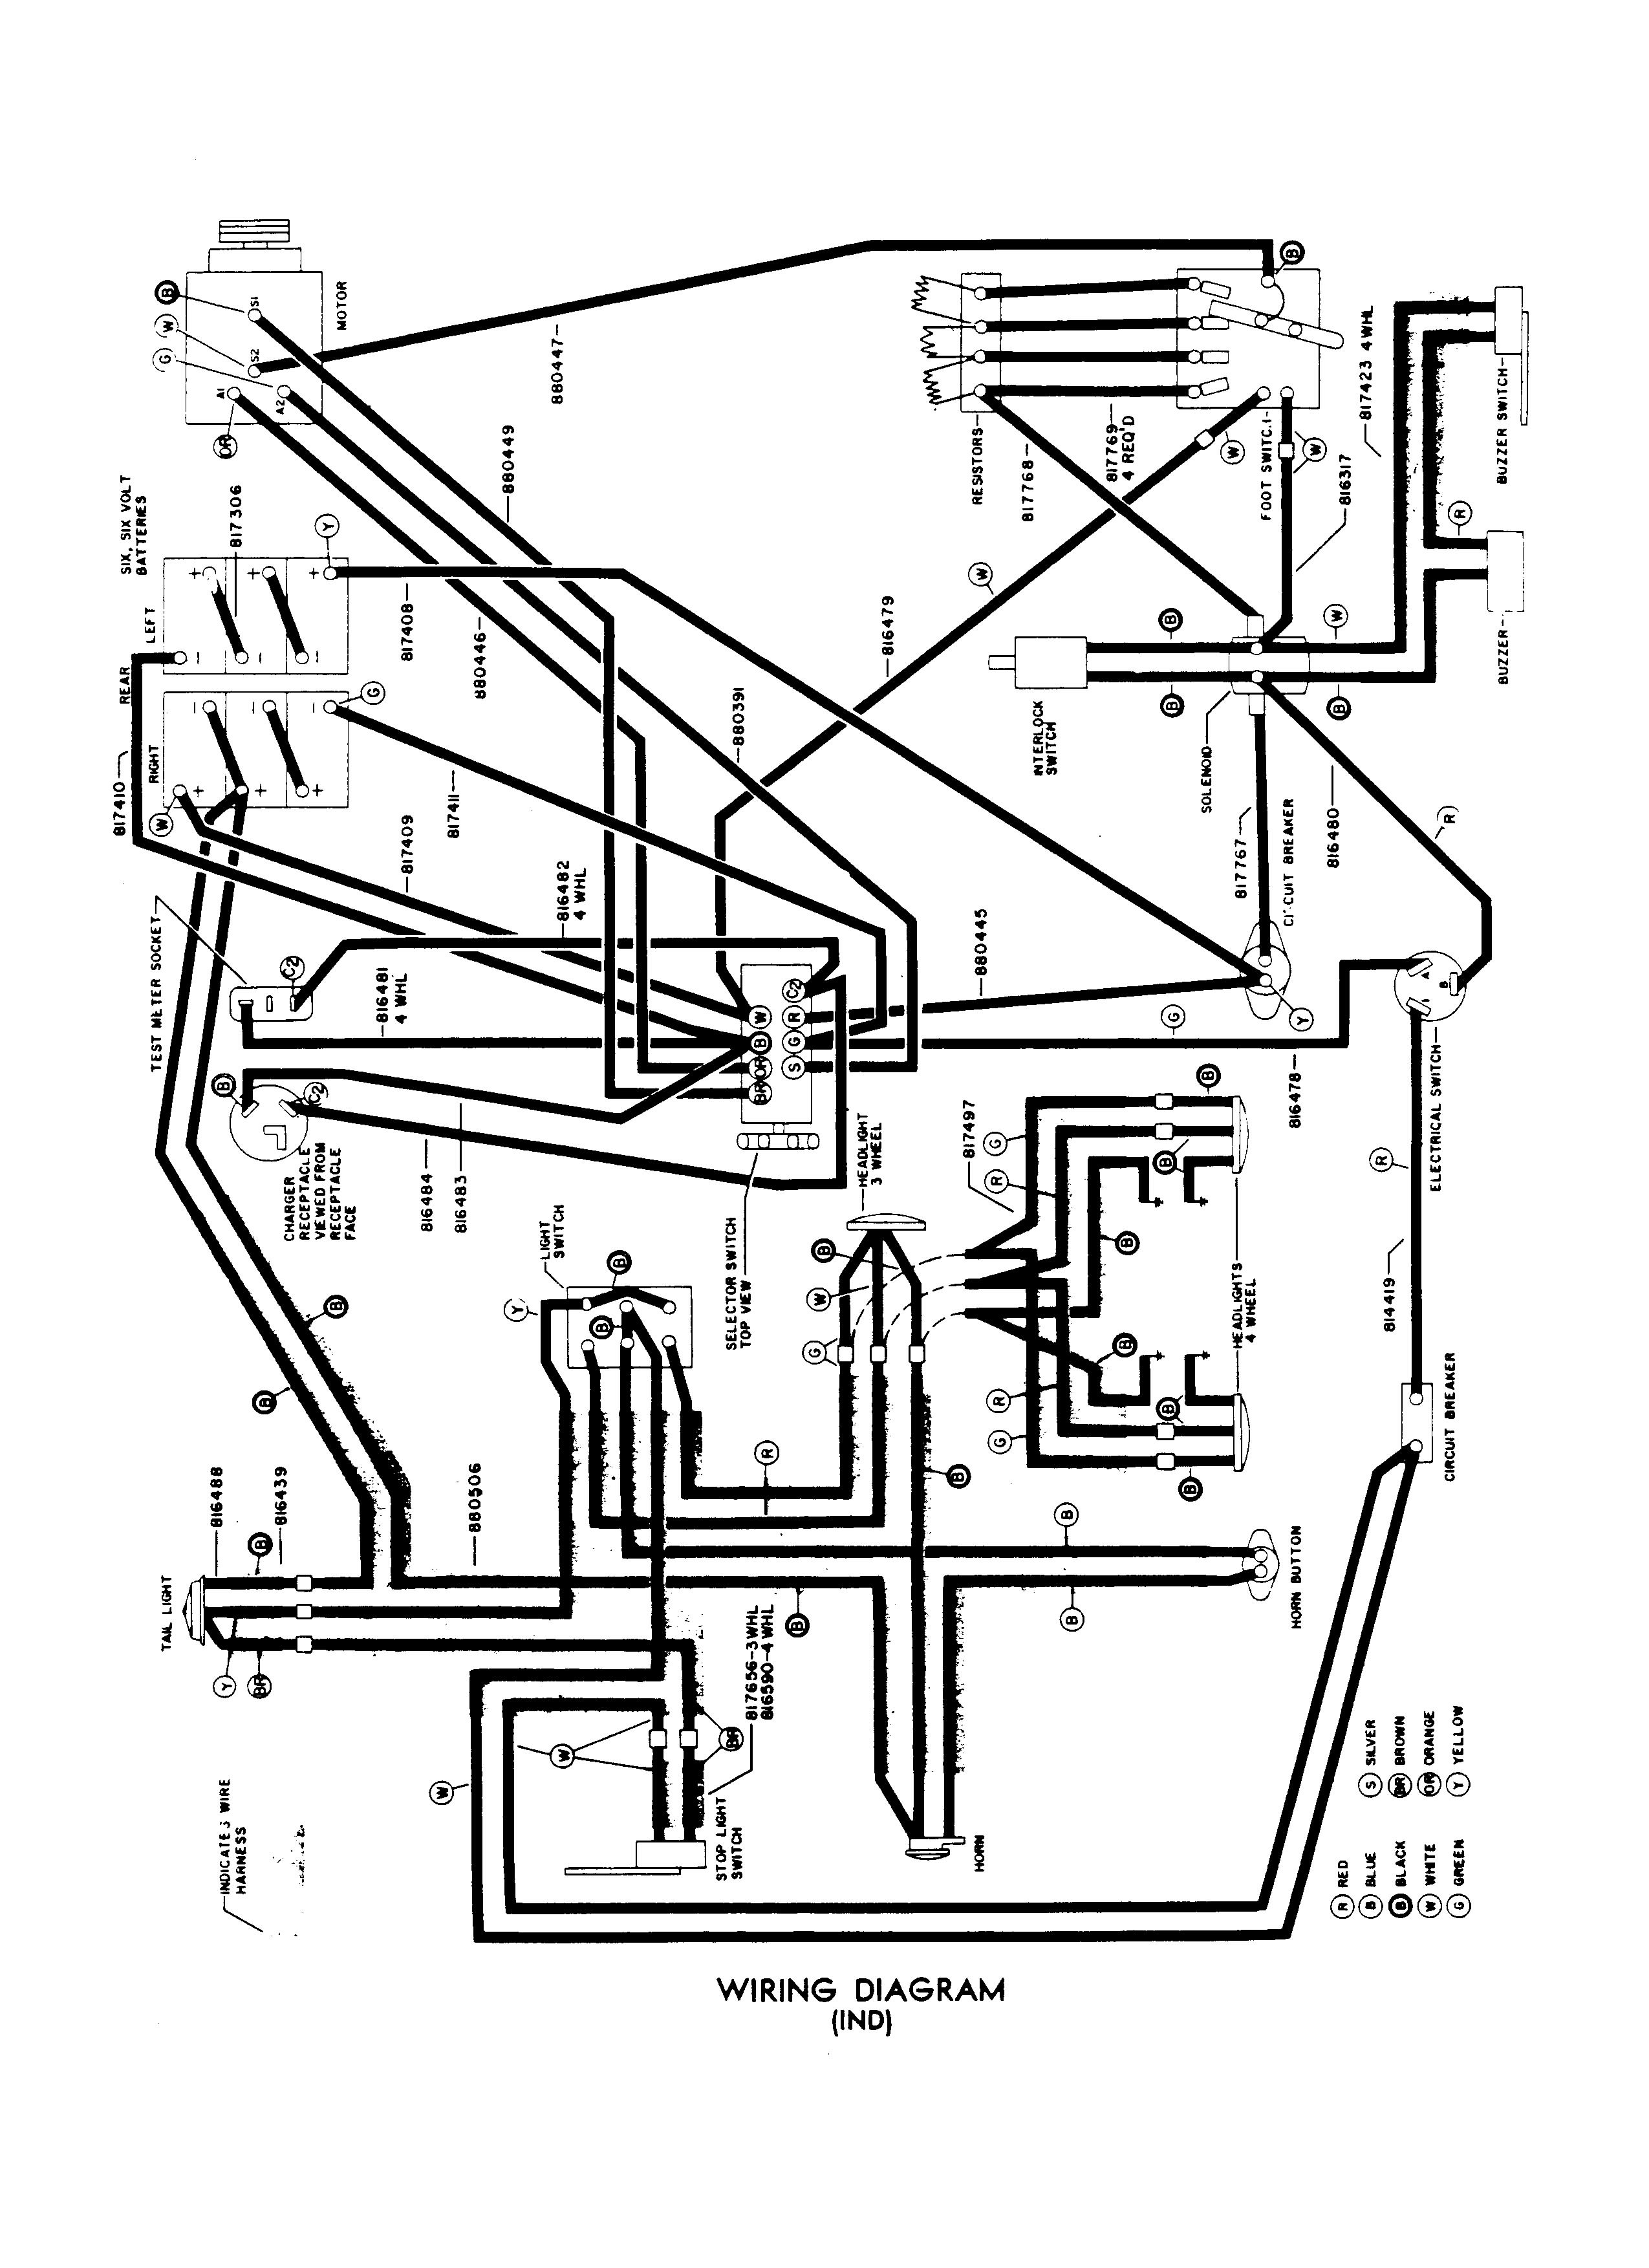 Electrical Symbols Drawing At Free For Personal Electric Diagram Of House Wiring Fan Motor 2550x3507 Patent Us6367570 Hybrid Vehicle With